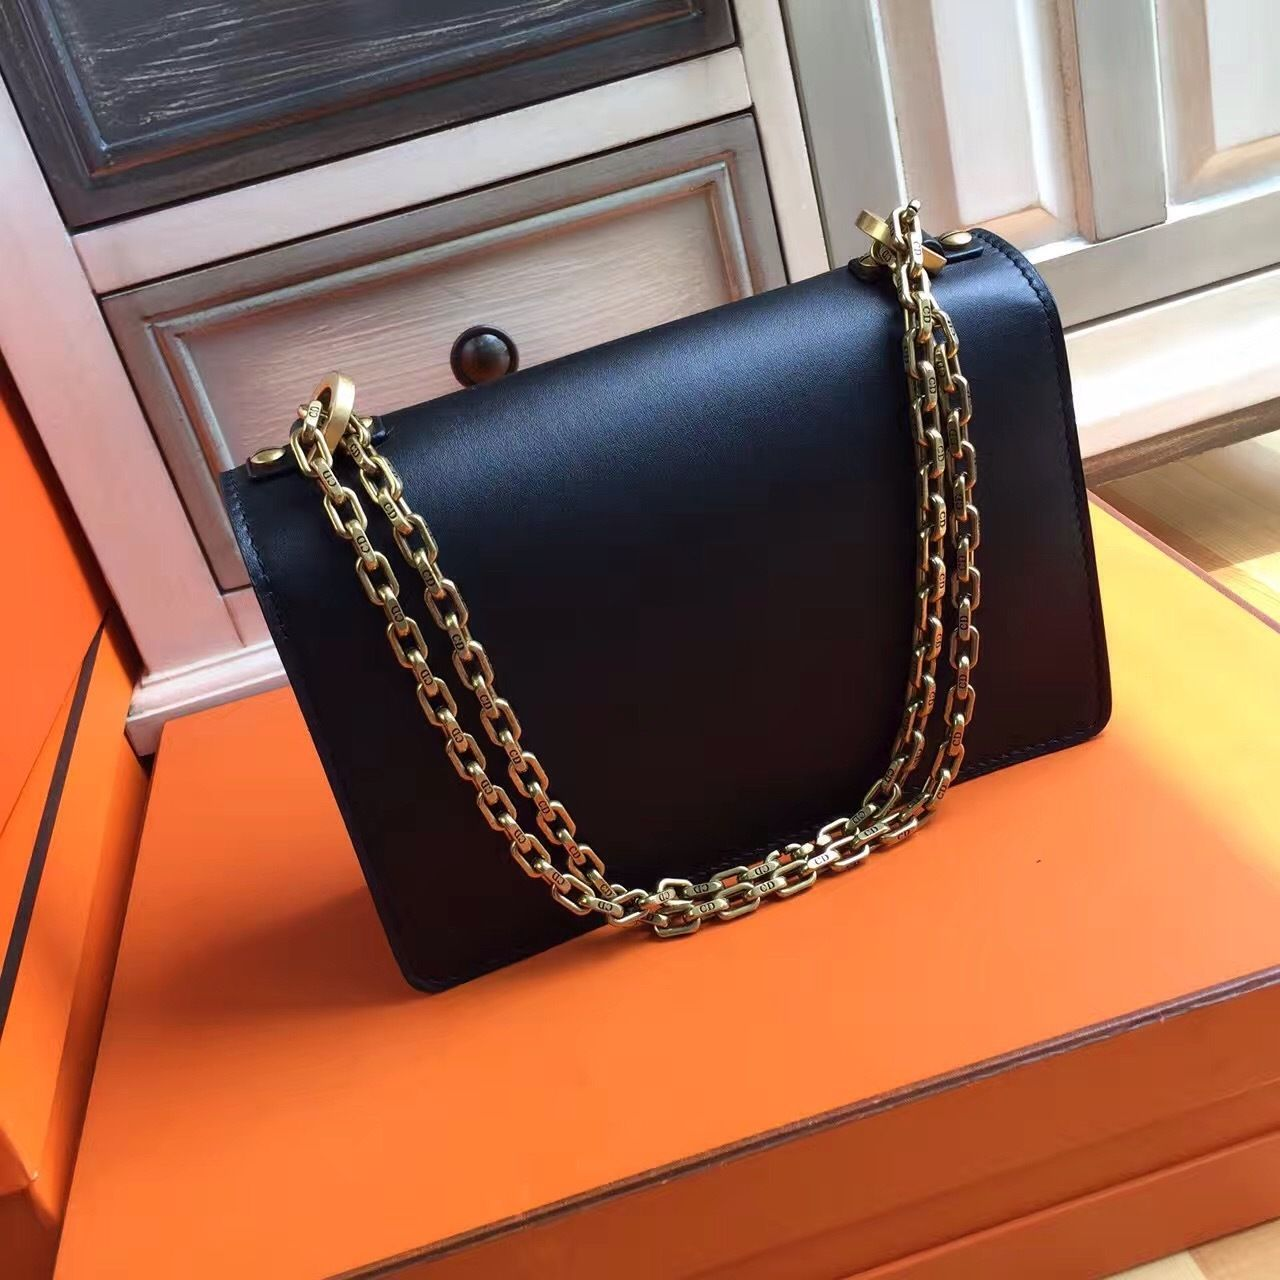 J'ADIOR FLAP BAG WITH CHAIN IN BLACK CALFSKIN Bella Vita